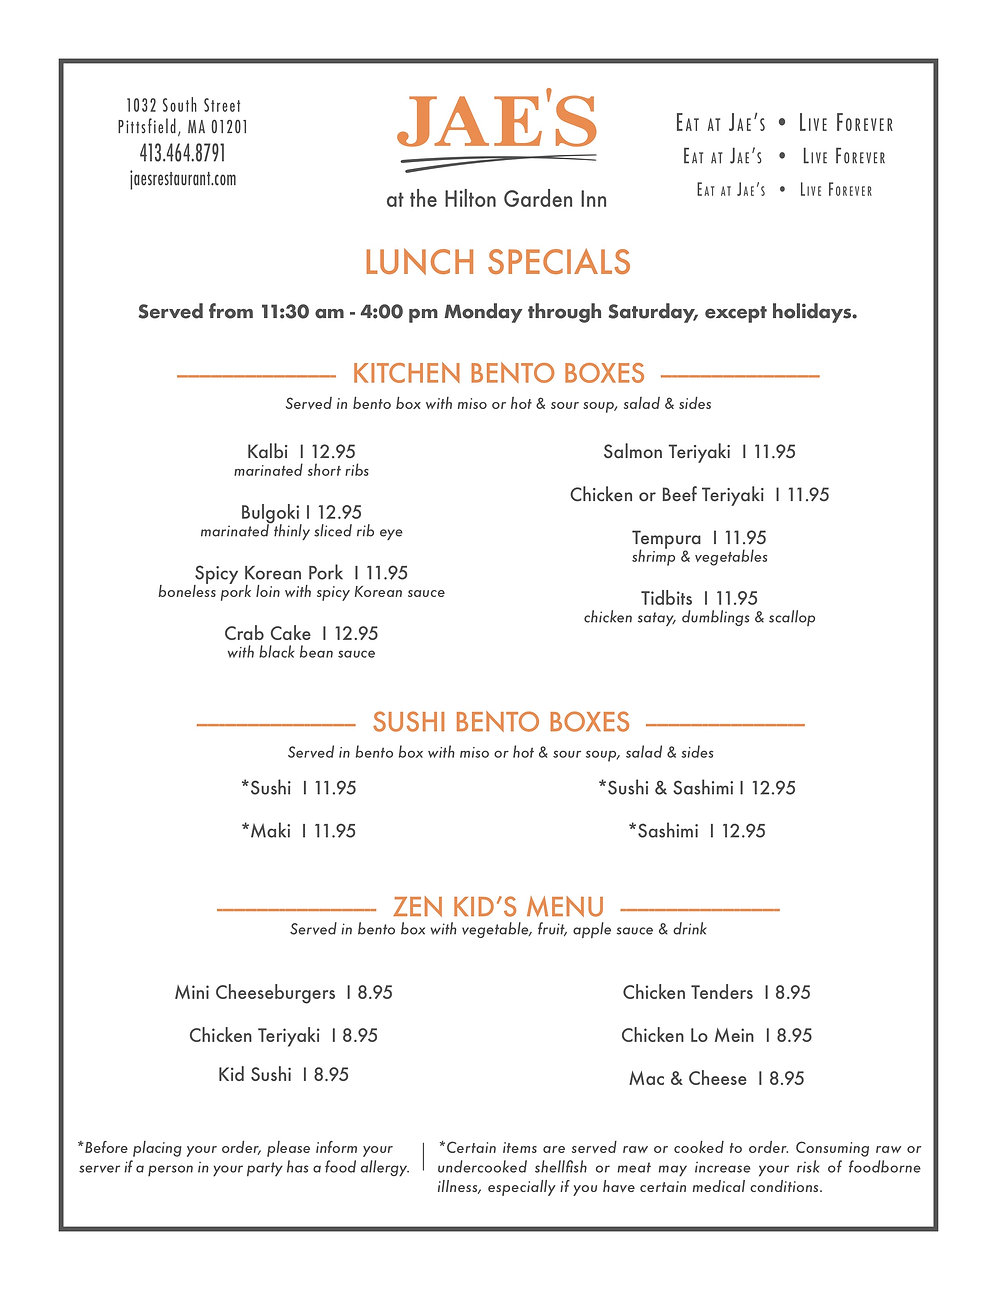 Jae Hilton Lunch Specials Menu CL 011219